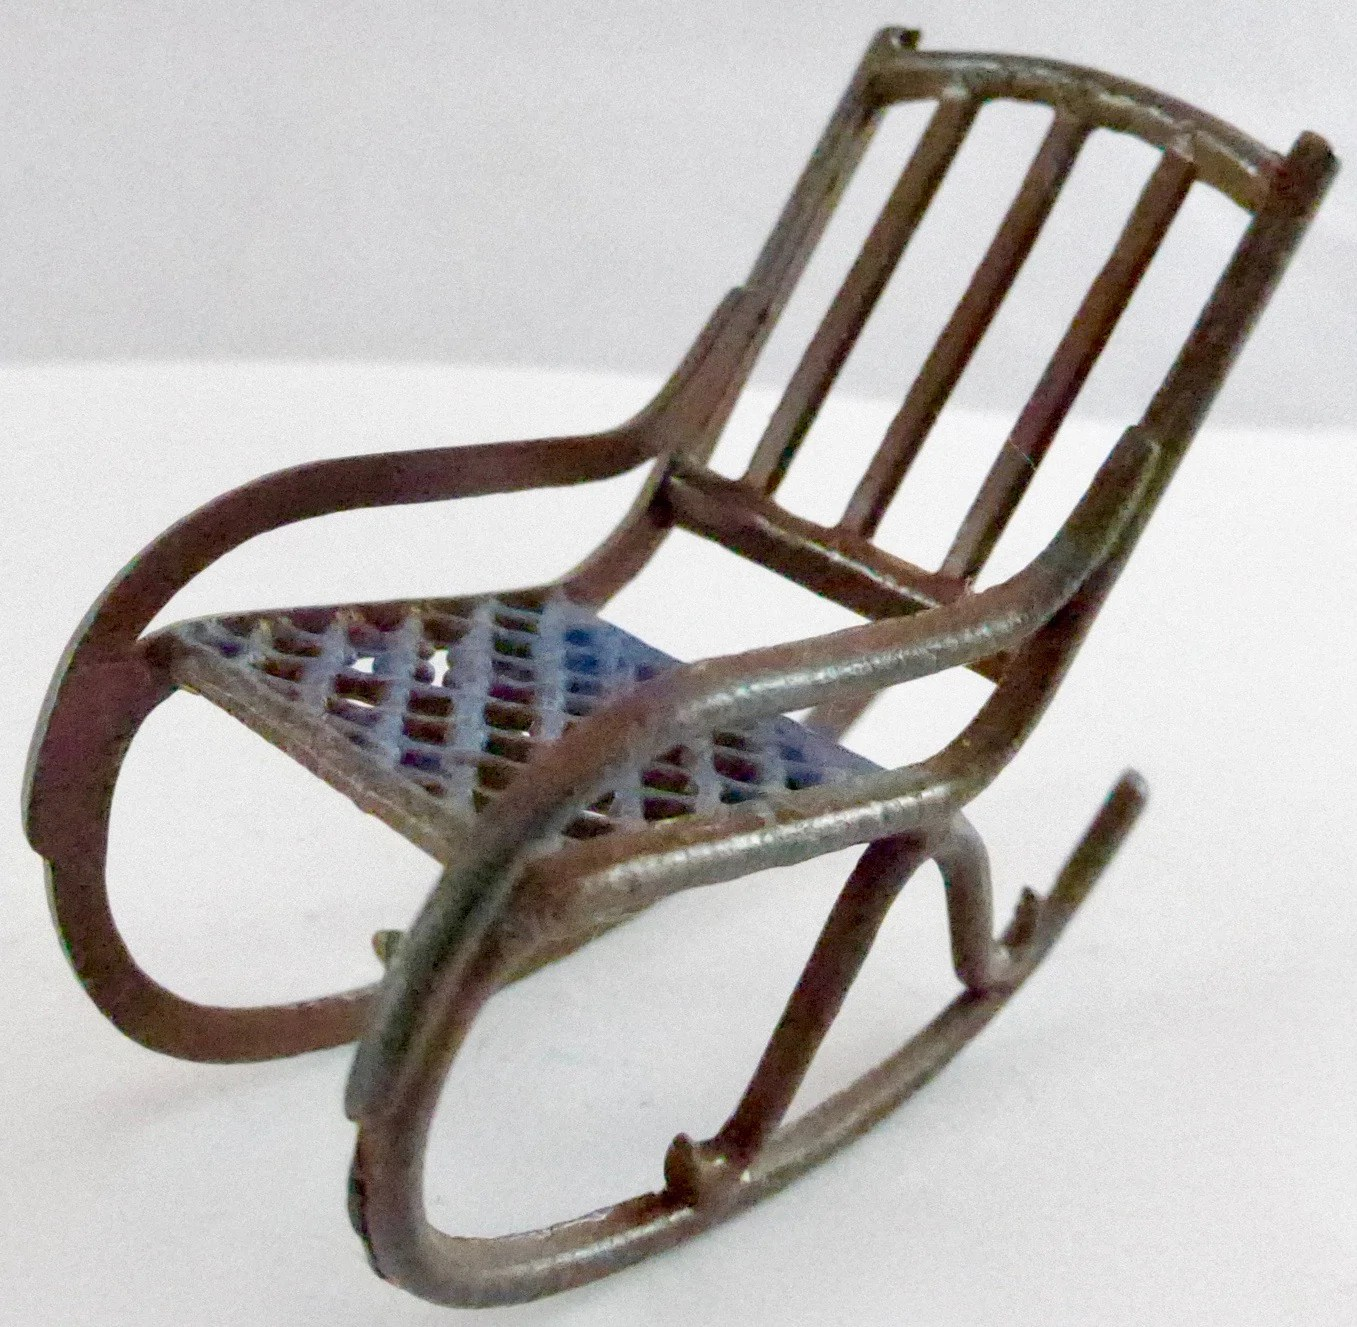 1920s rocking chair windsor style rare britains dolls house brown blue